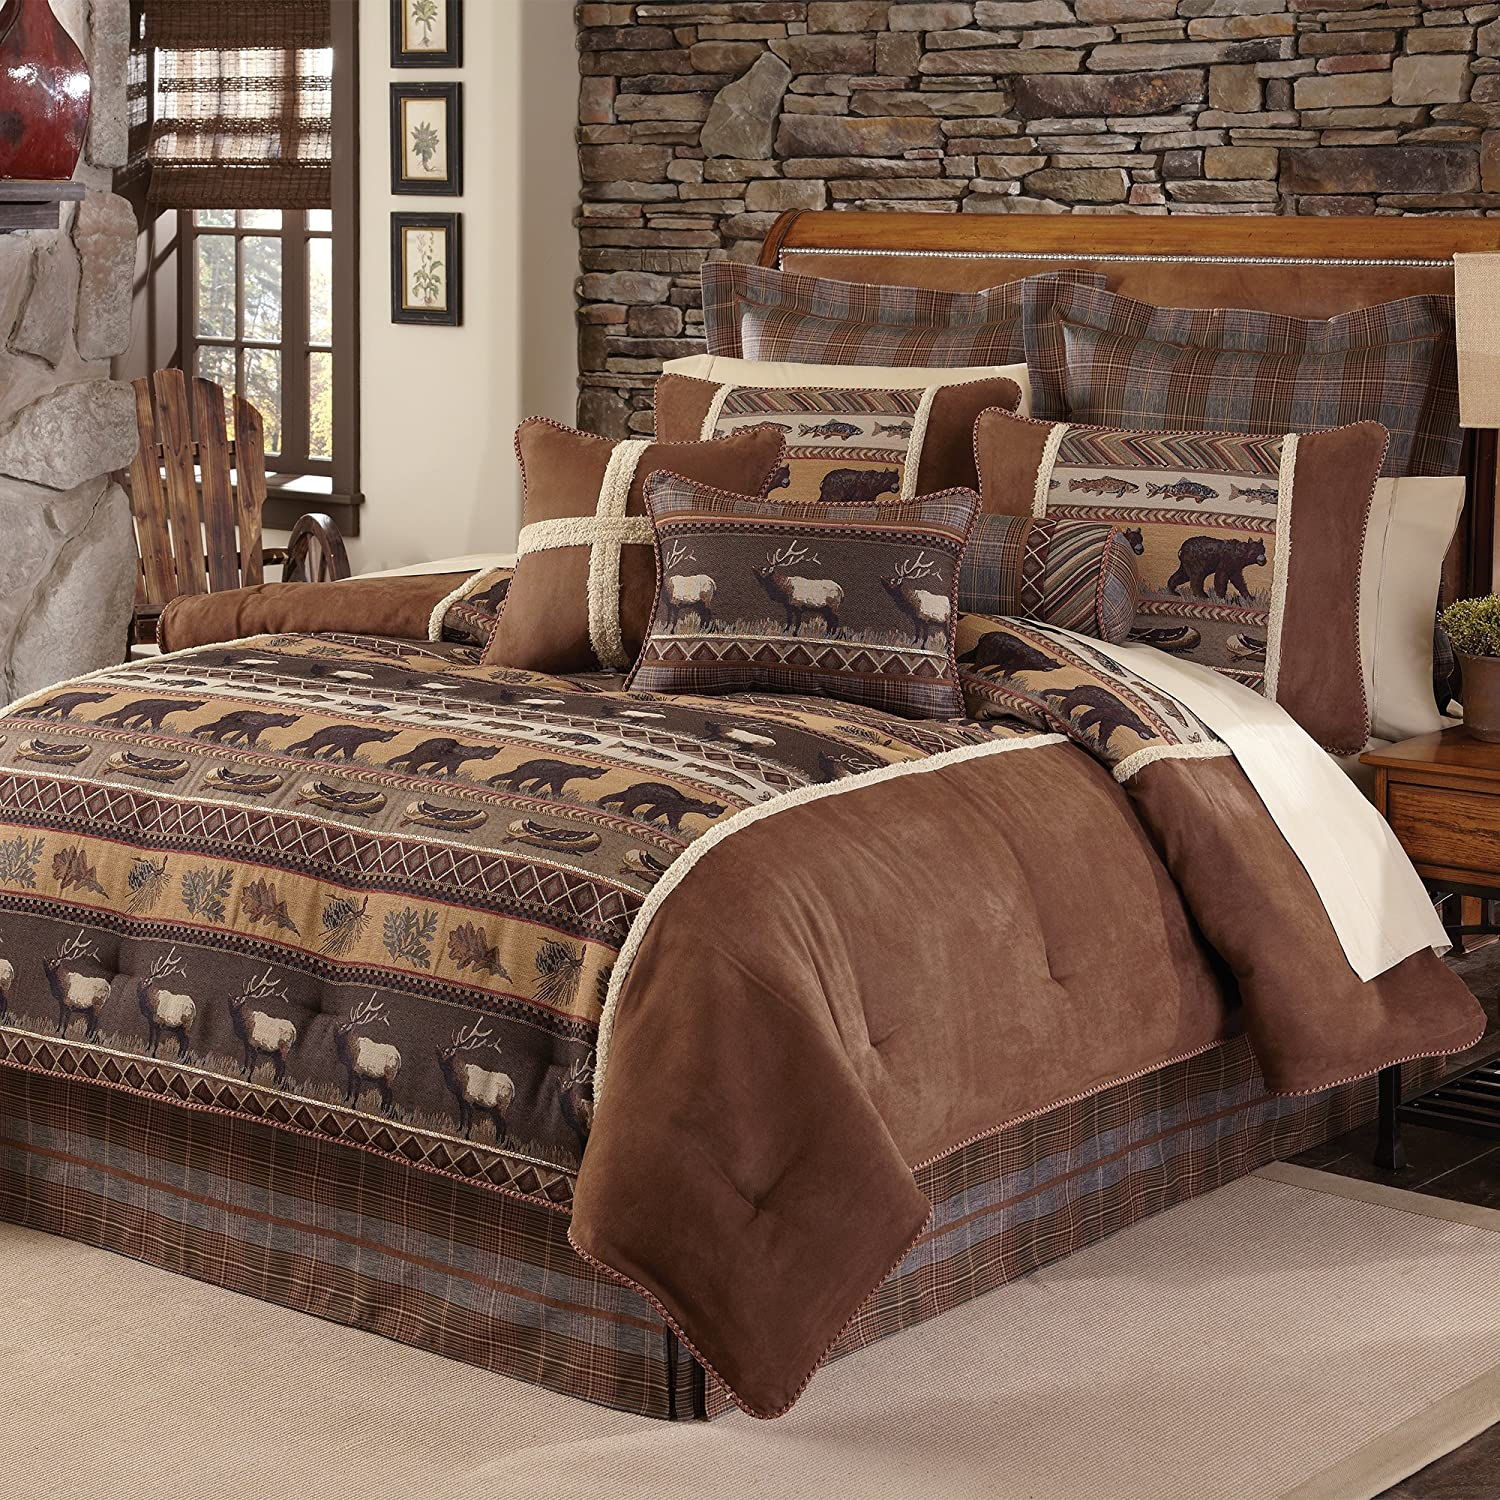 4 Piece Brown Cabin Themed Comforter King/Cal King Set, Lodge Bedding Bears